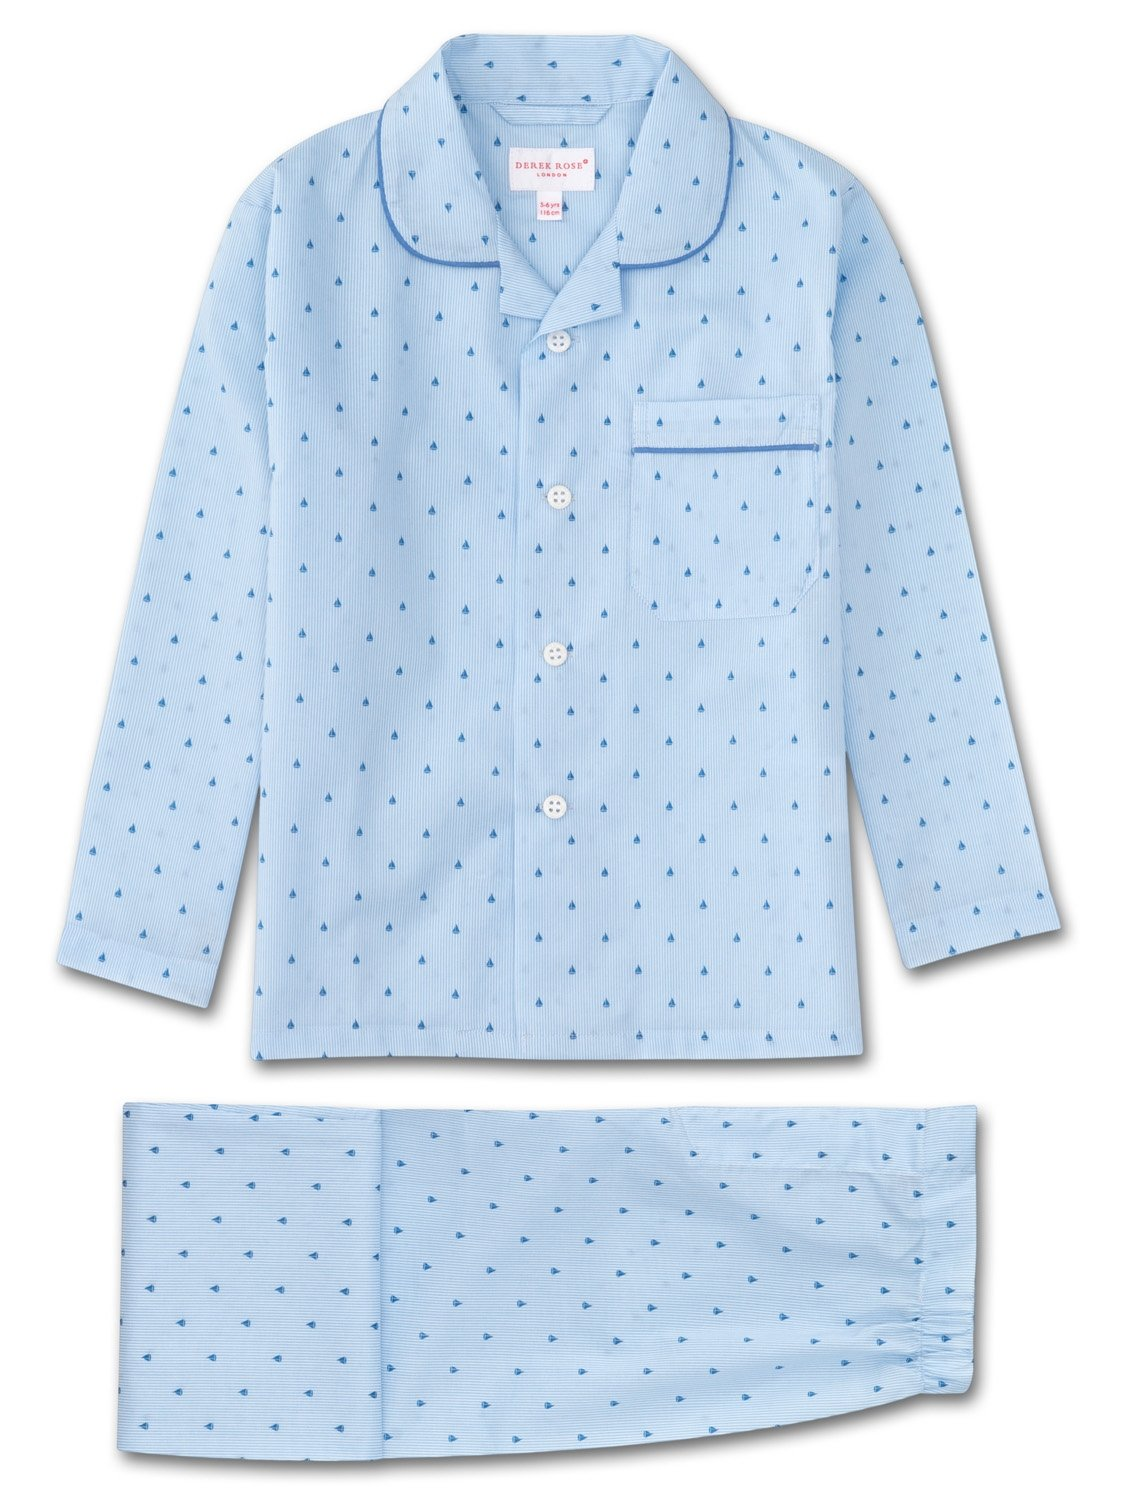 Boys' Pyjamas Nelson 63 Cotton Batiste Blue